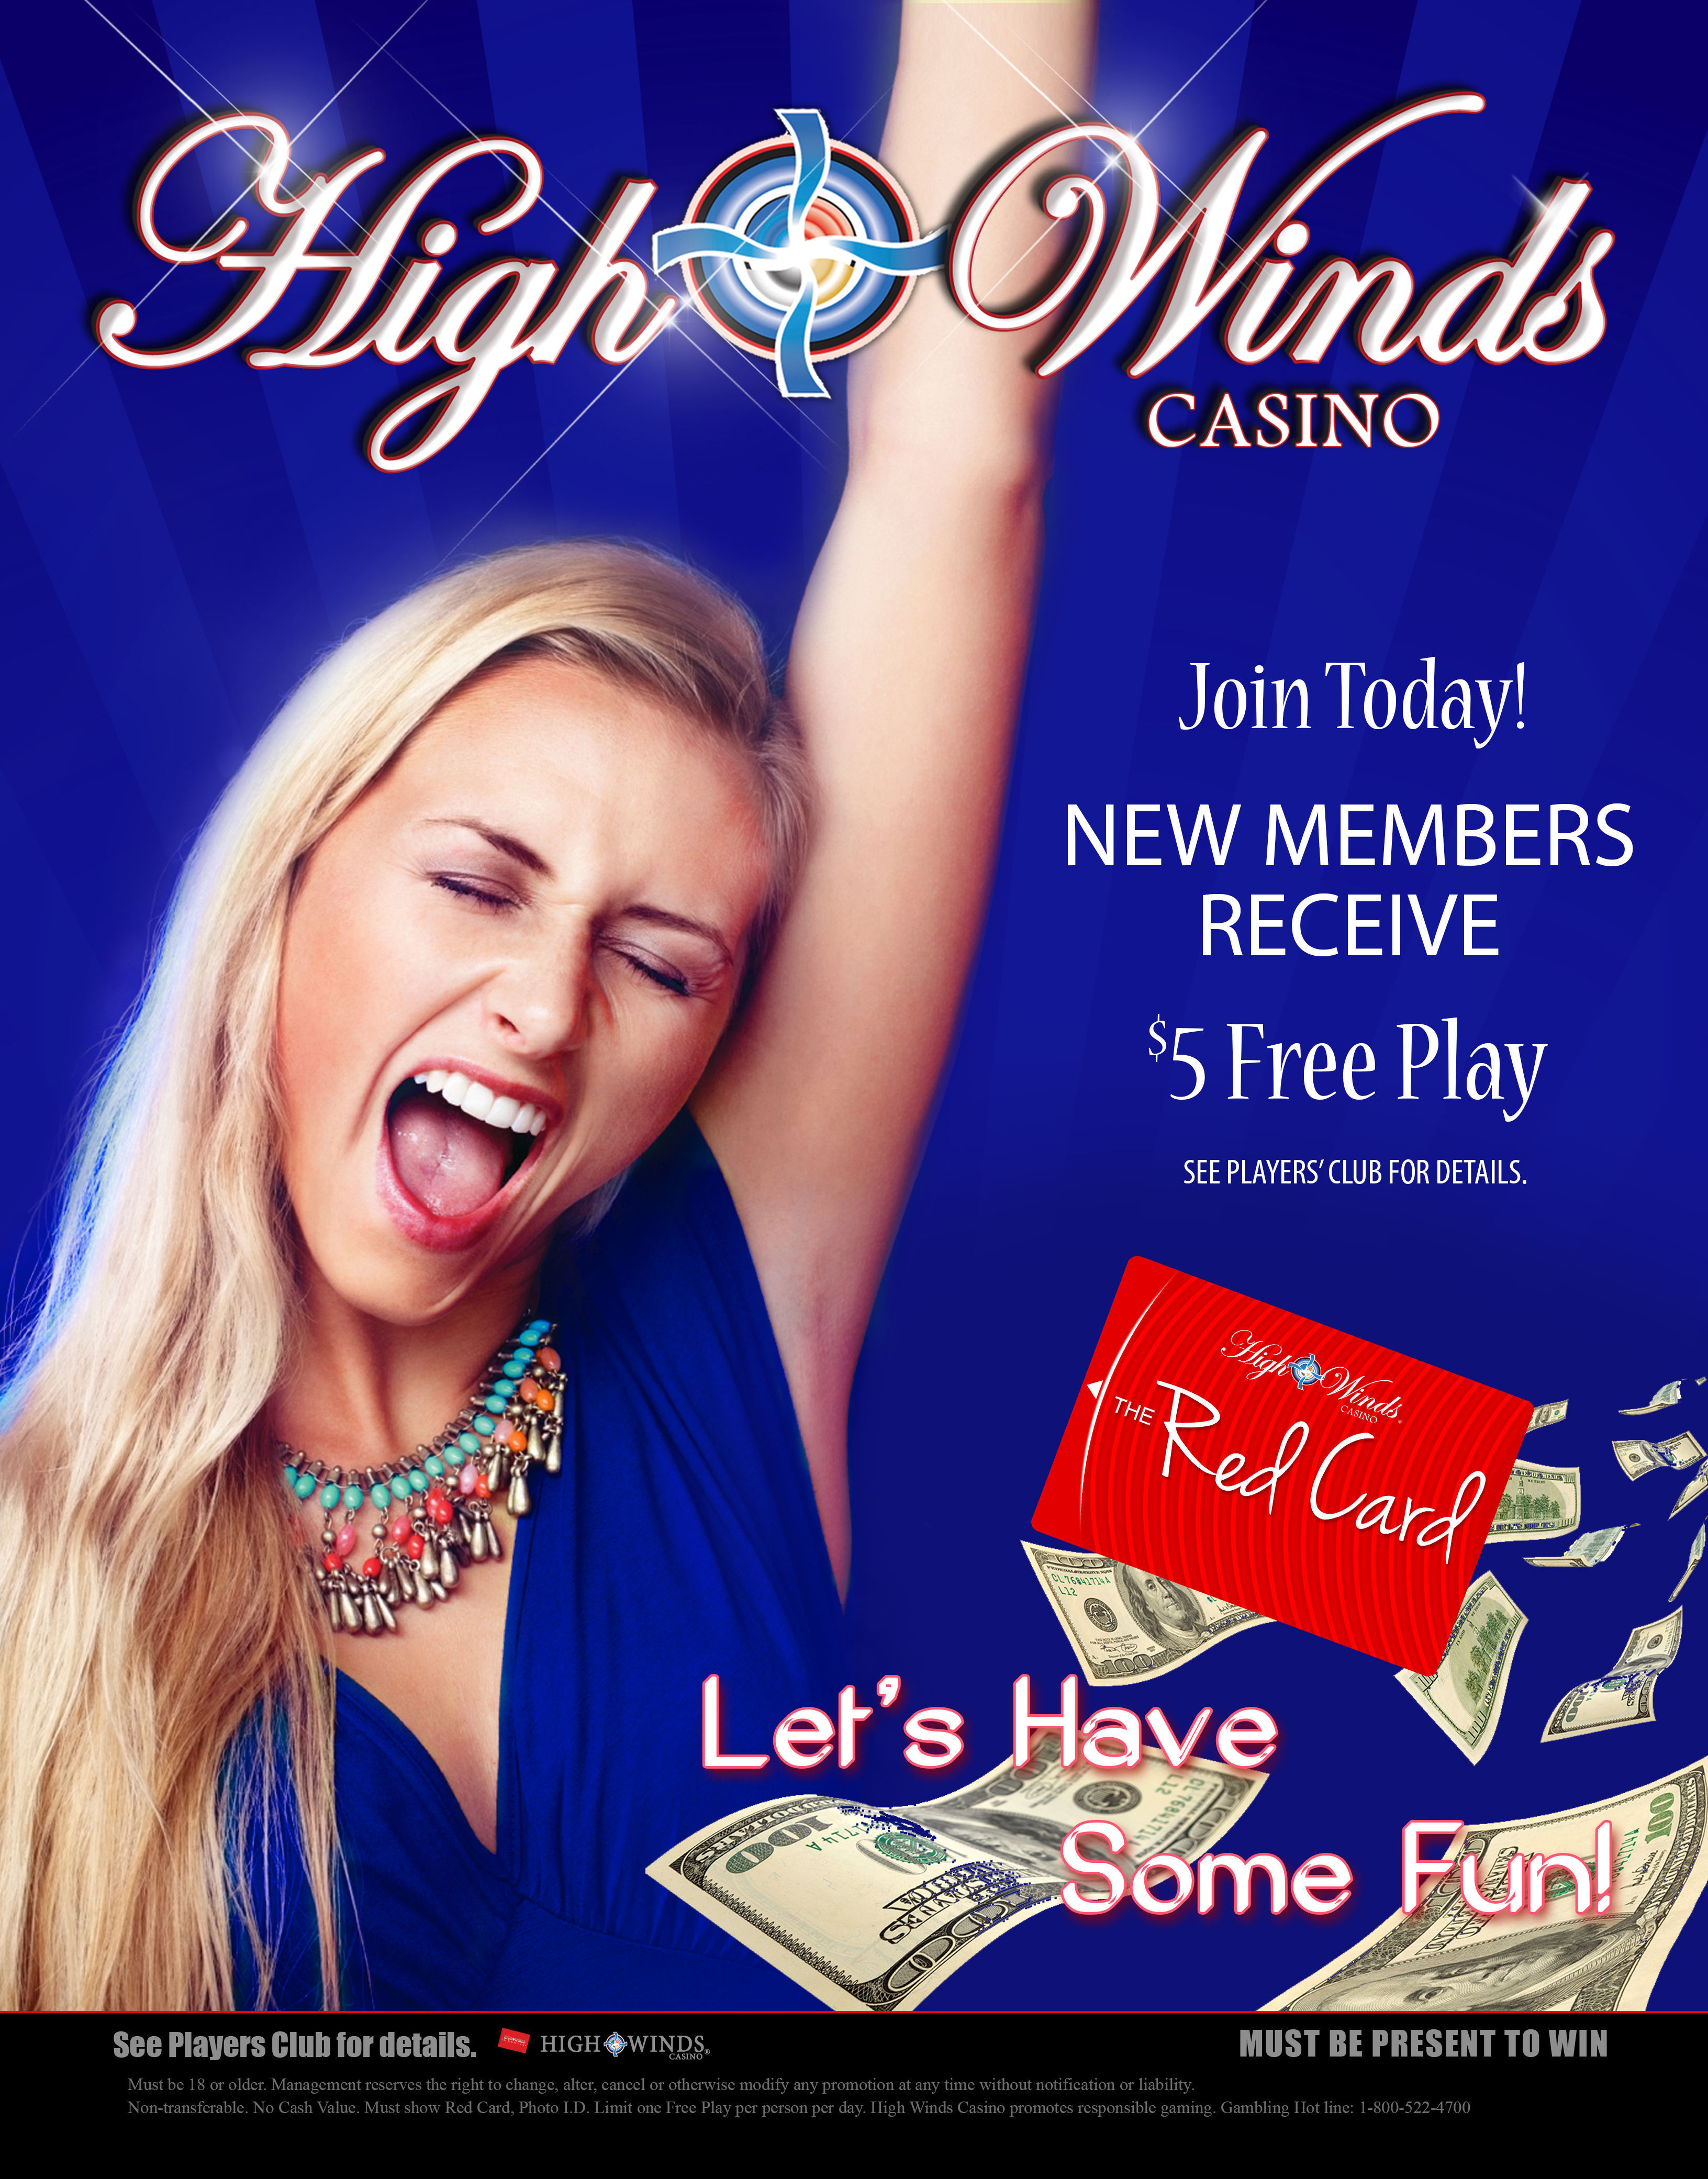 Join the Red Card Club and let the fun begin! New members recieve $5 free play just for joining. Your red card allows you to win our in house progressive jackpots in Area 51. Simply insert your card at any Area 51 machine and with any bet you could be on your way to winning a jackpot. Use your Red Card while playing so you can be rewarded with exclusive offers based on your play.